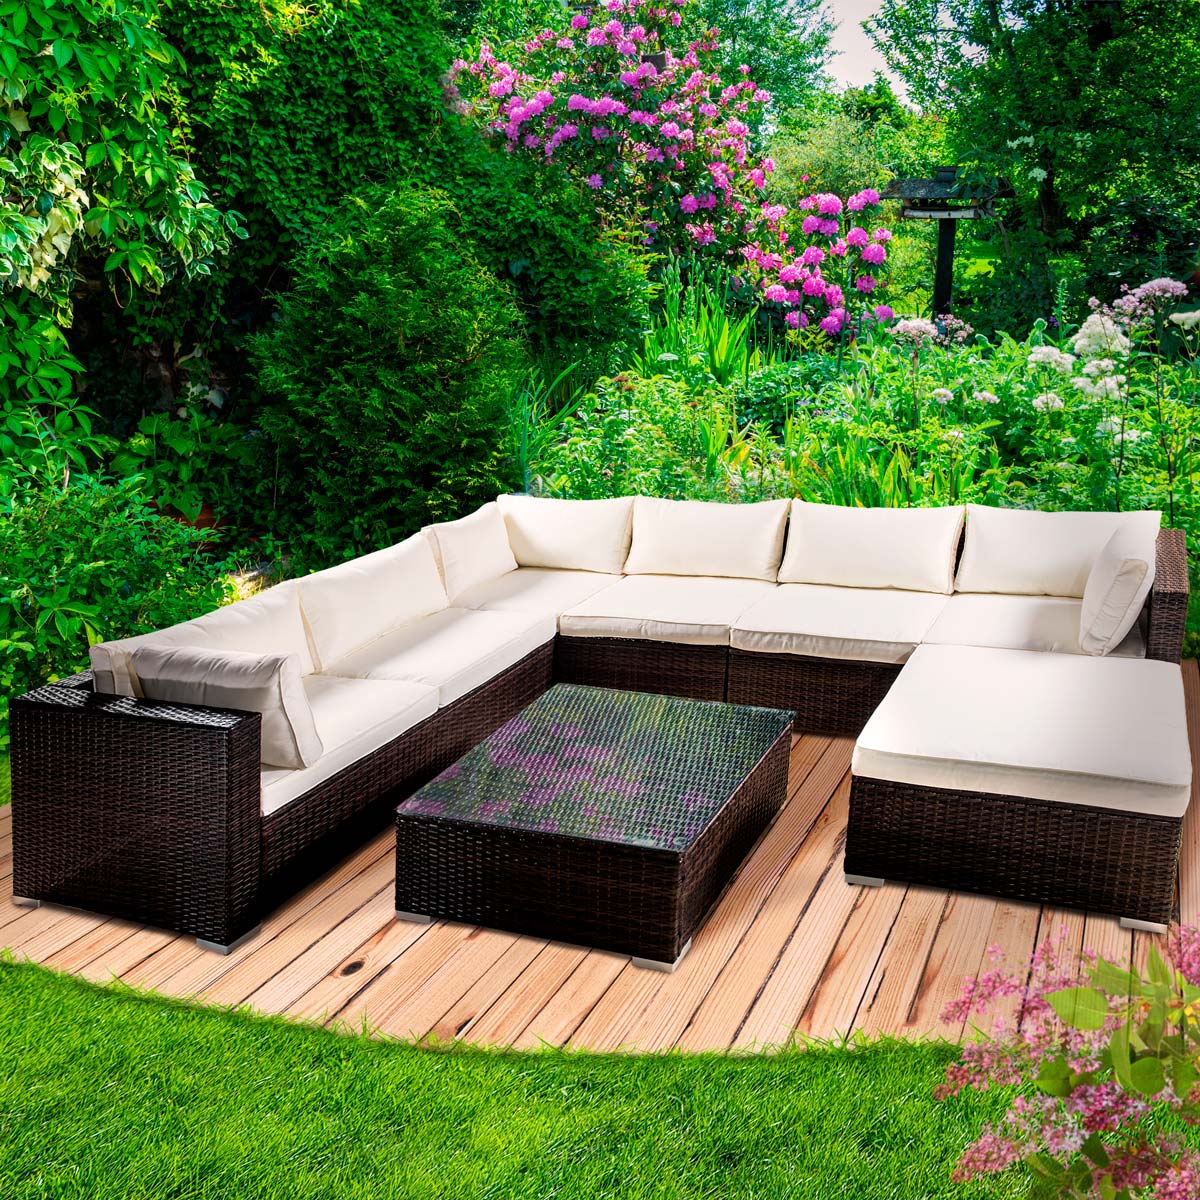 poly rattan gartenm bel lounge m bel sitzgarnitur gartengarnitur sitzgruppe sofa. Black Bedroom Furniture Sets. Home Design Ideas